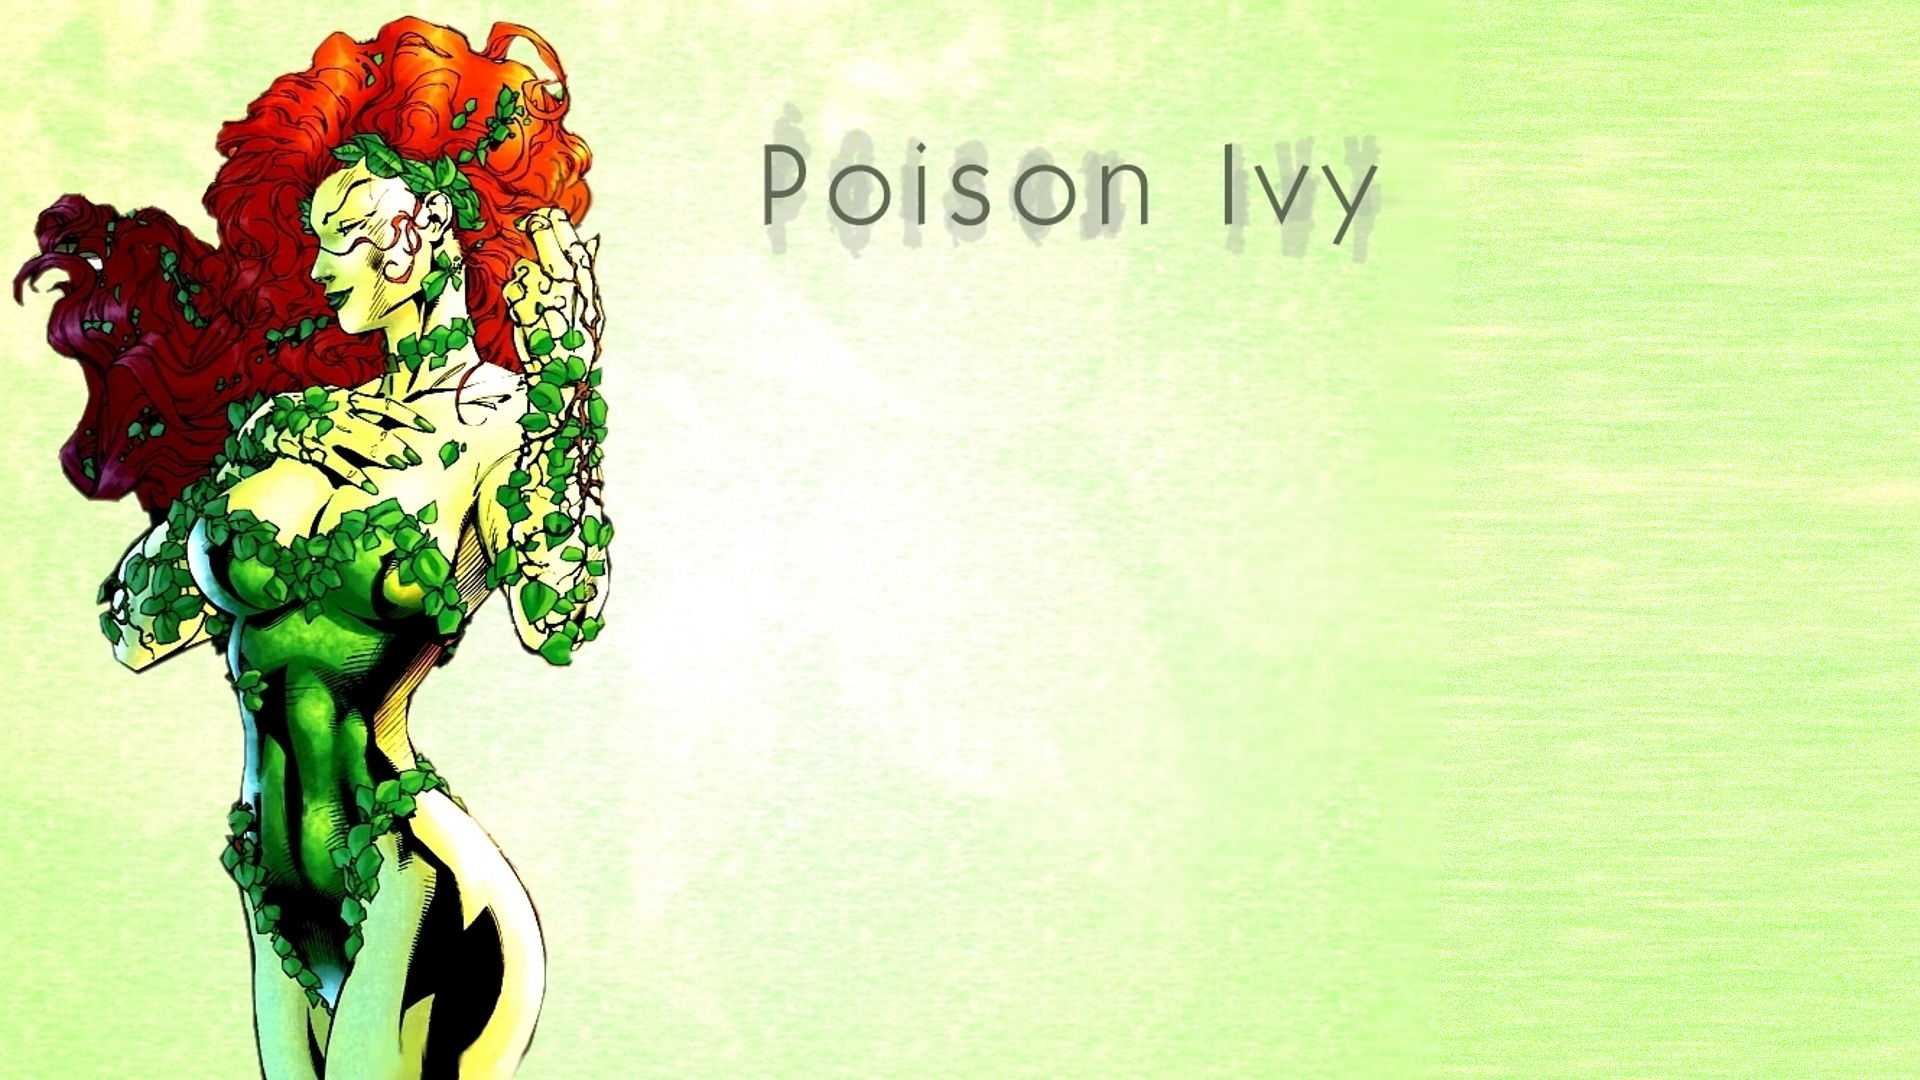 Harley Quinn Wallpaper Iphone X Poison Ivy Hd Wallpaper Background Image 1920x1080